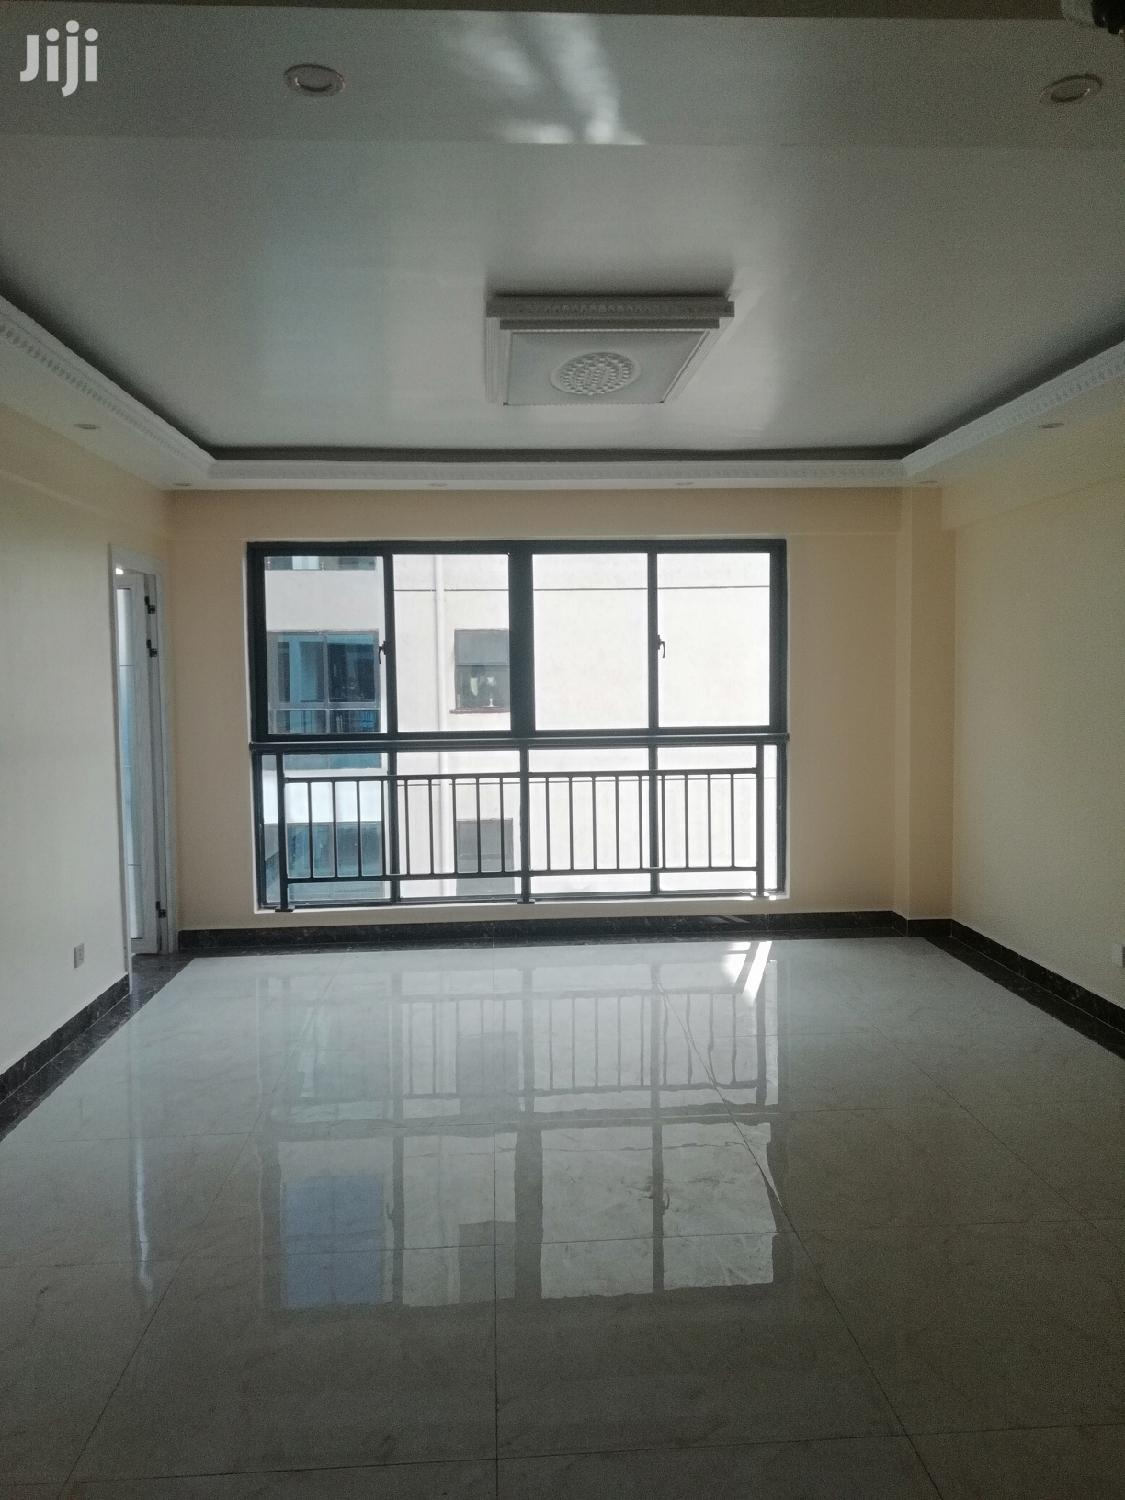 Property World;2/3brs Apartment Ensuite,Gym,Lift and Secure